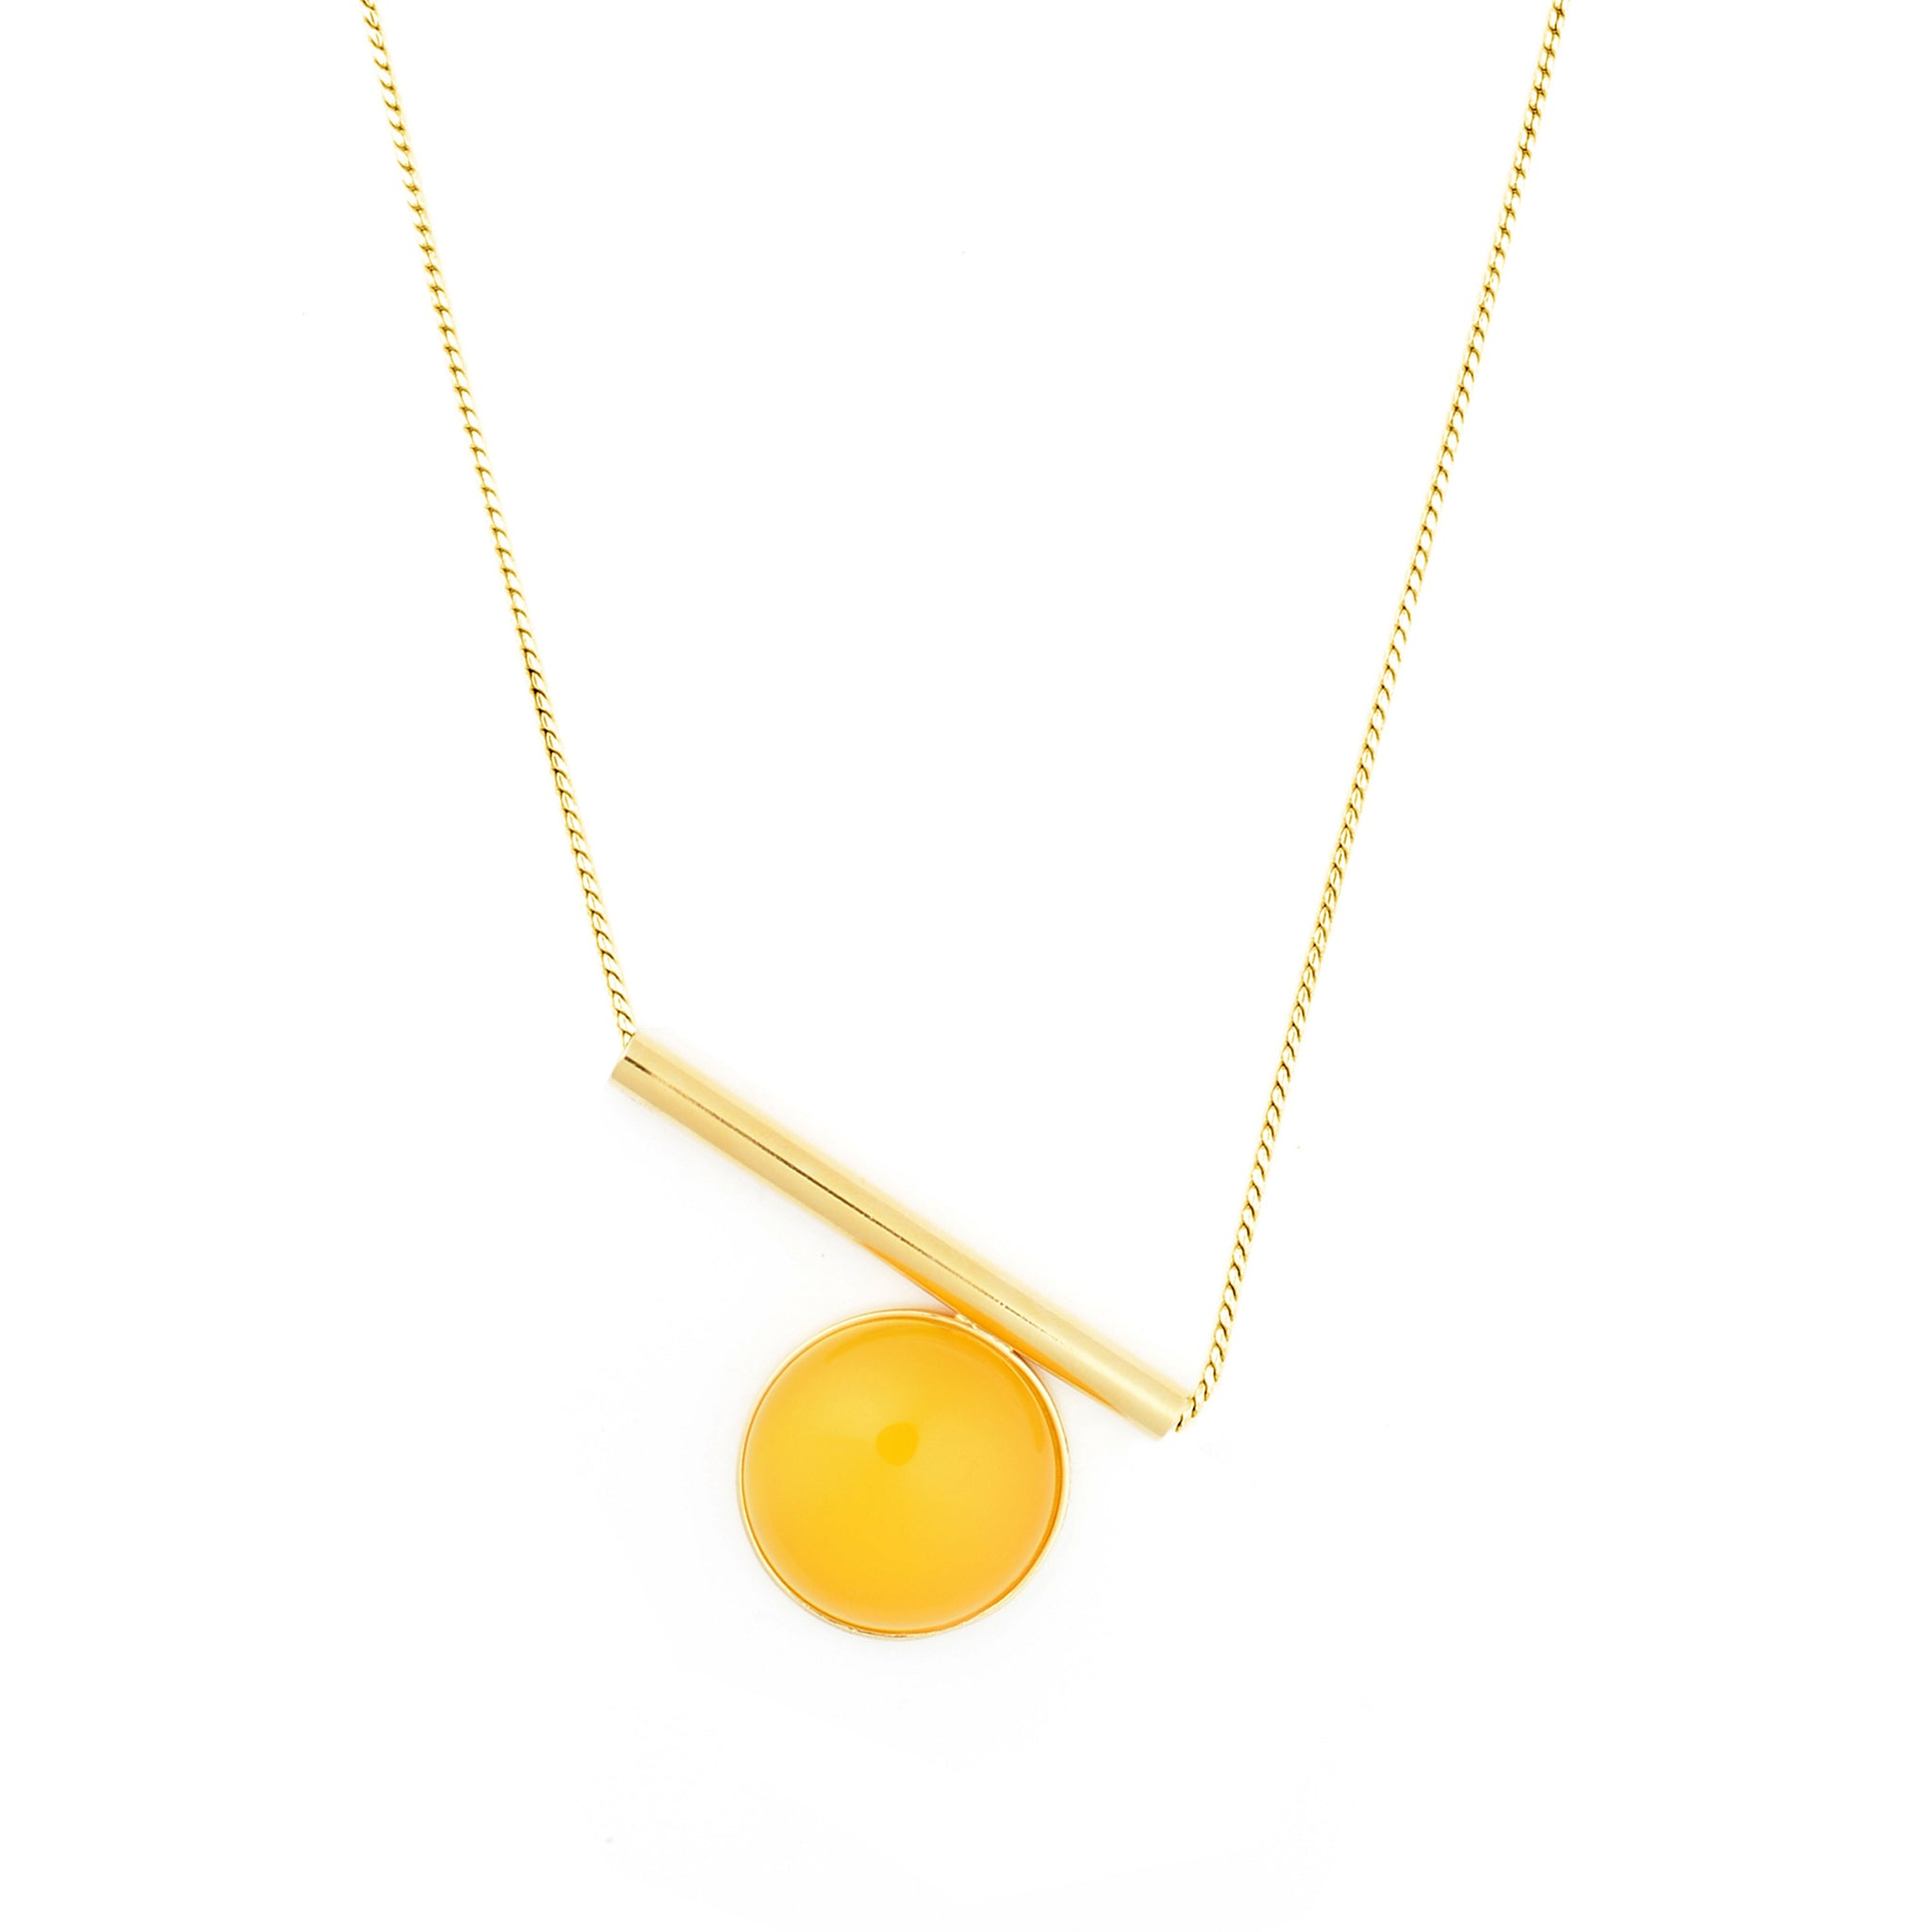 Sterling silver Necklace with yellow Agate stone